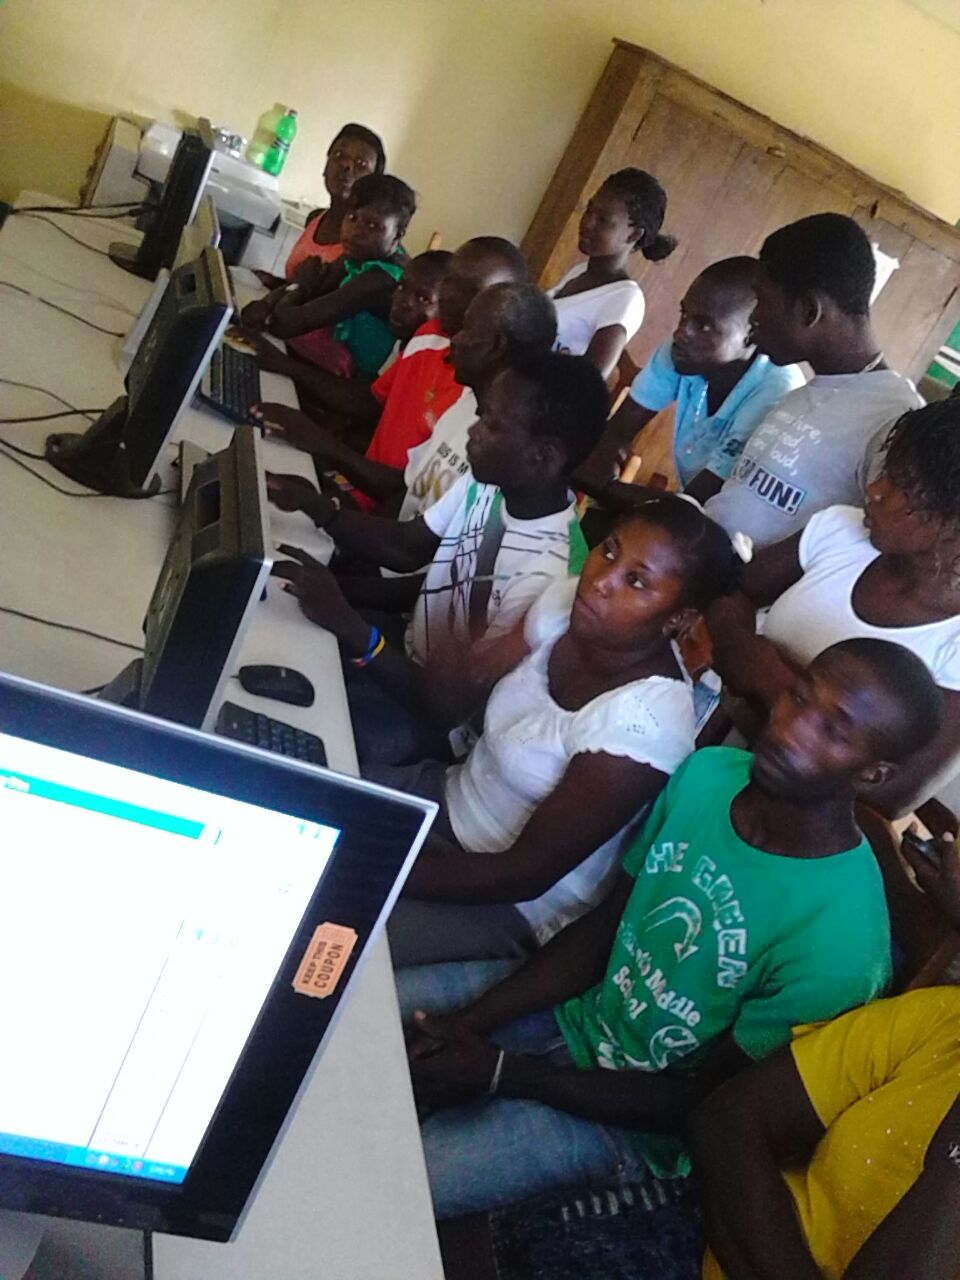 OPODNE Leaders Open Computer Training Centers And Deliver Medical Supplies To Local Communities